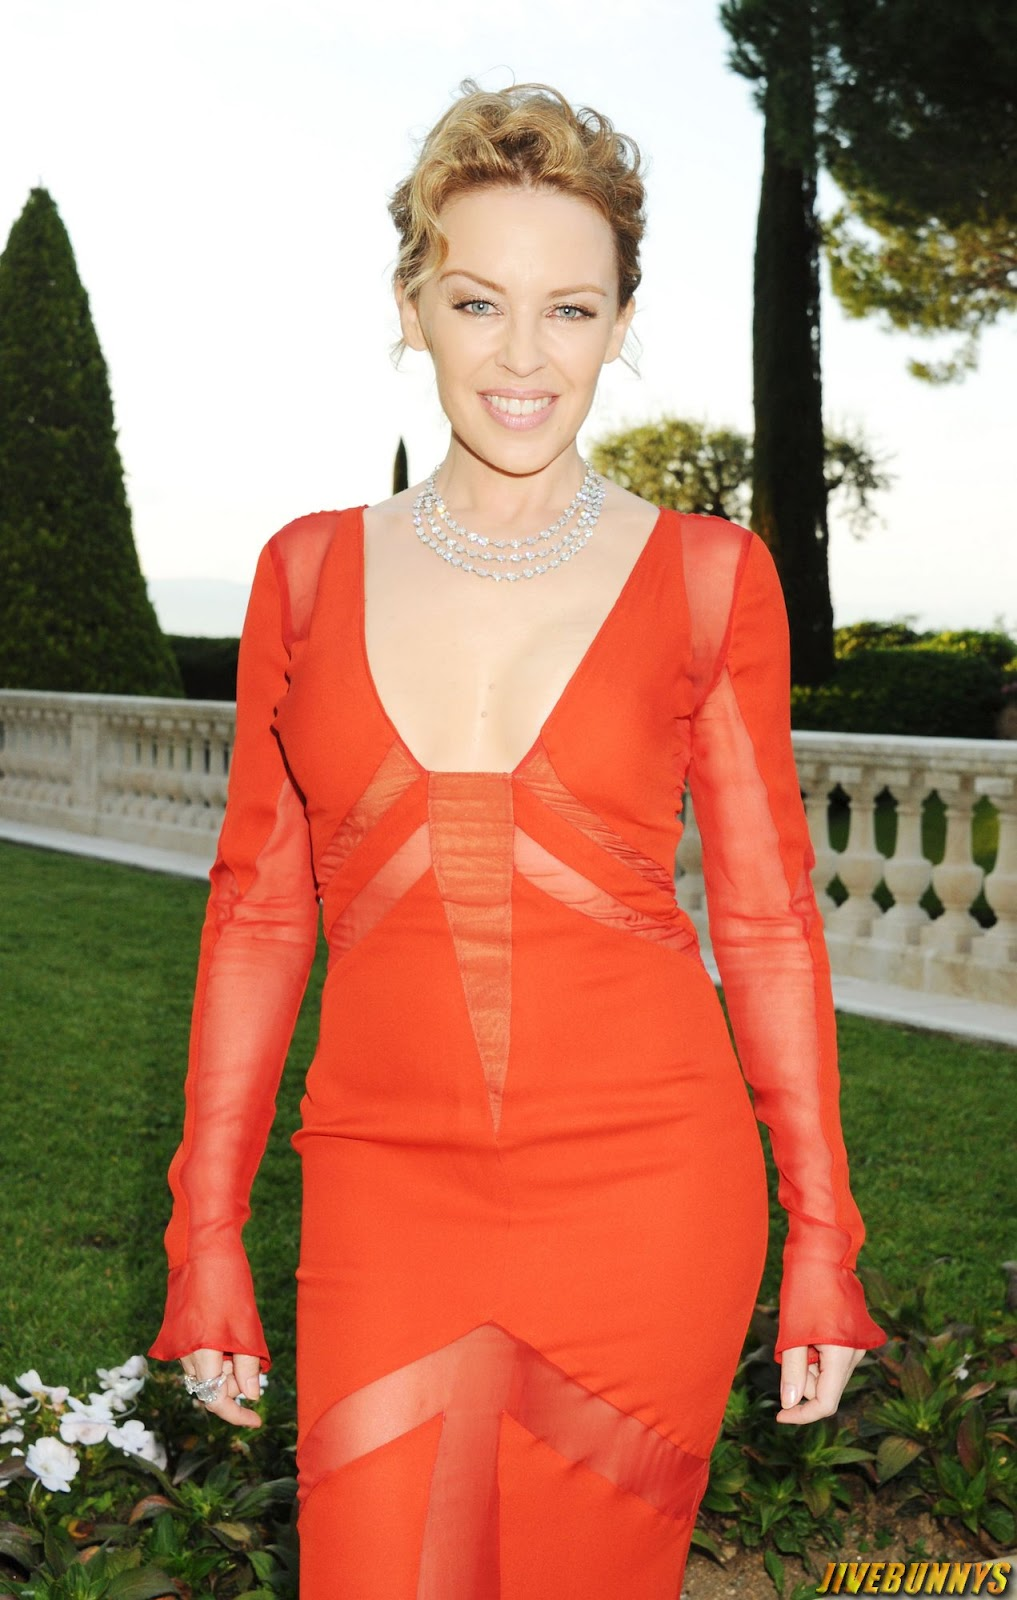 Jivebunnys Female Celebrity Picture Gallery: Kylie Minogue Sexy ... Beyonce Knowles